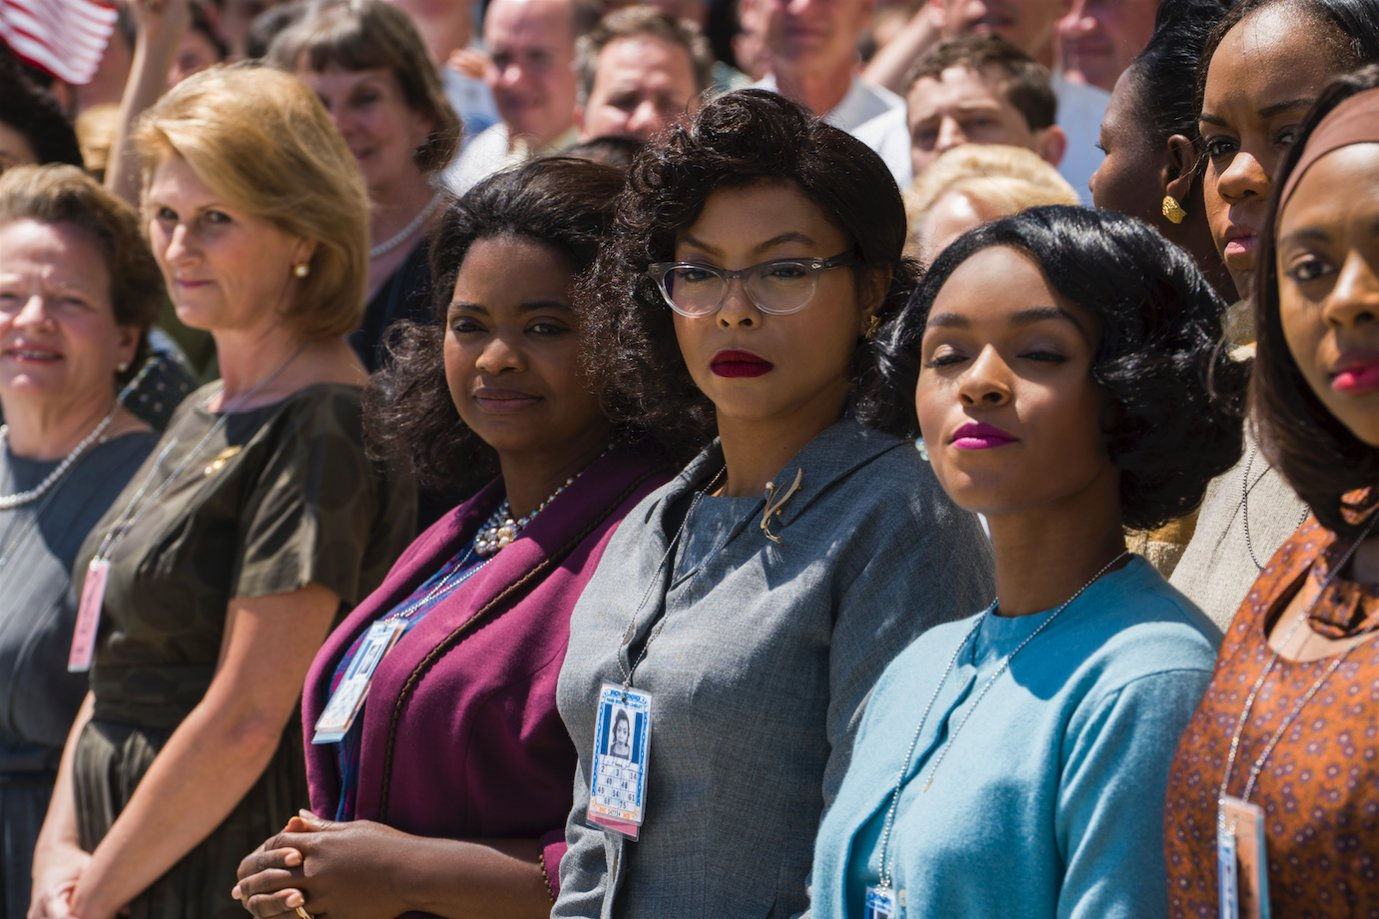 hiddenfigures_1